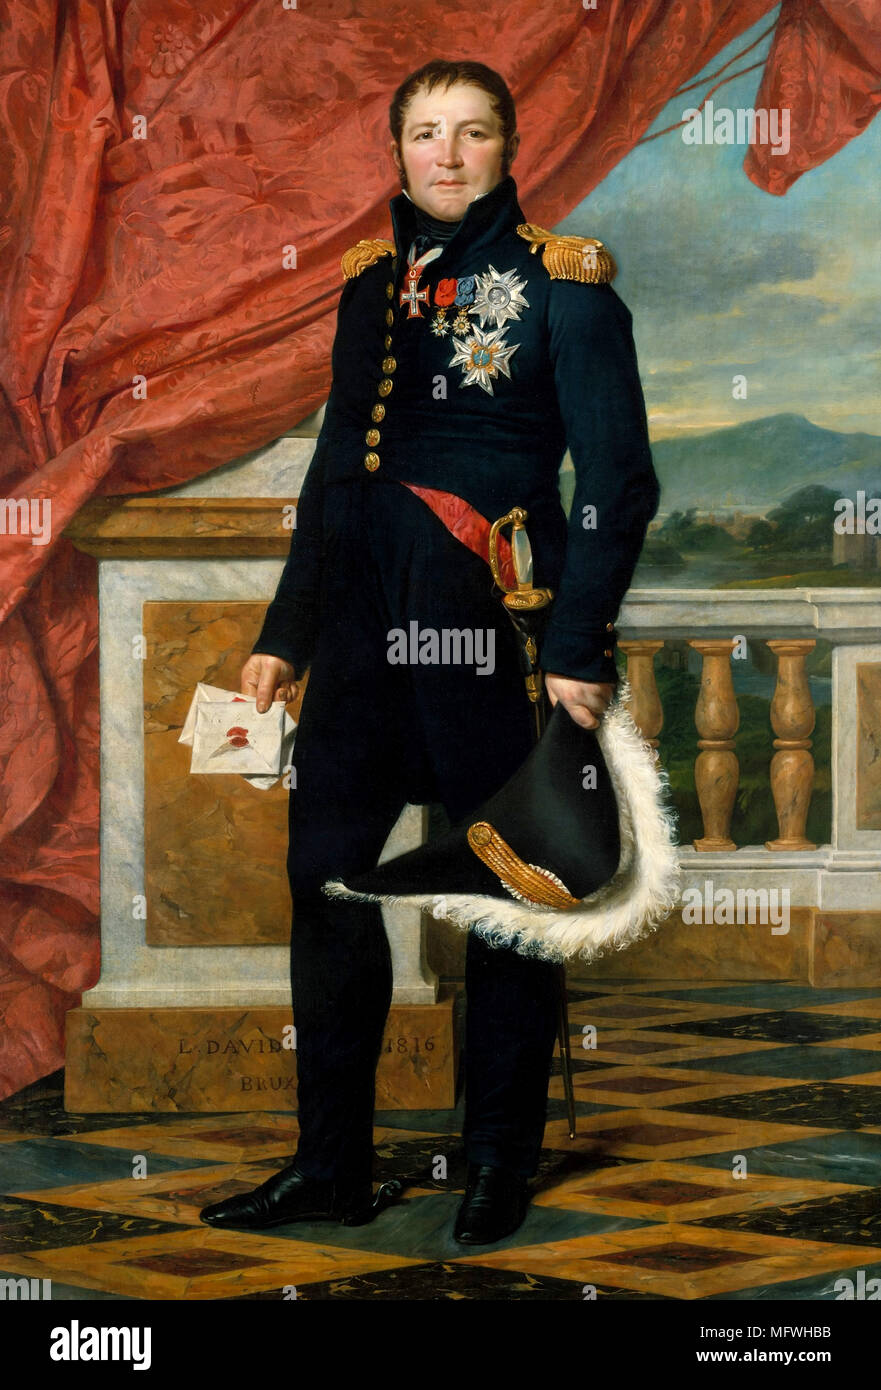 Étienne Maurice Gérard, 1er Comte Gérard (1773 – 1852) French general, statesman and Marshal of France. Prime Minister briefly in 1834 Etienne Maurice Gerard. Portrait by Jacques-Louis David - Stock Image